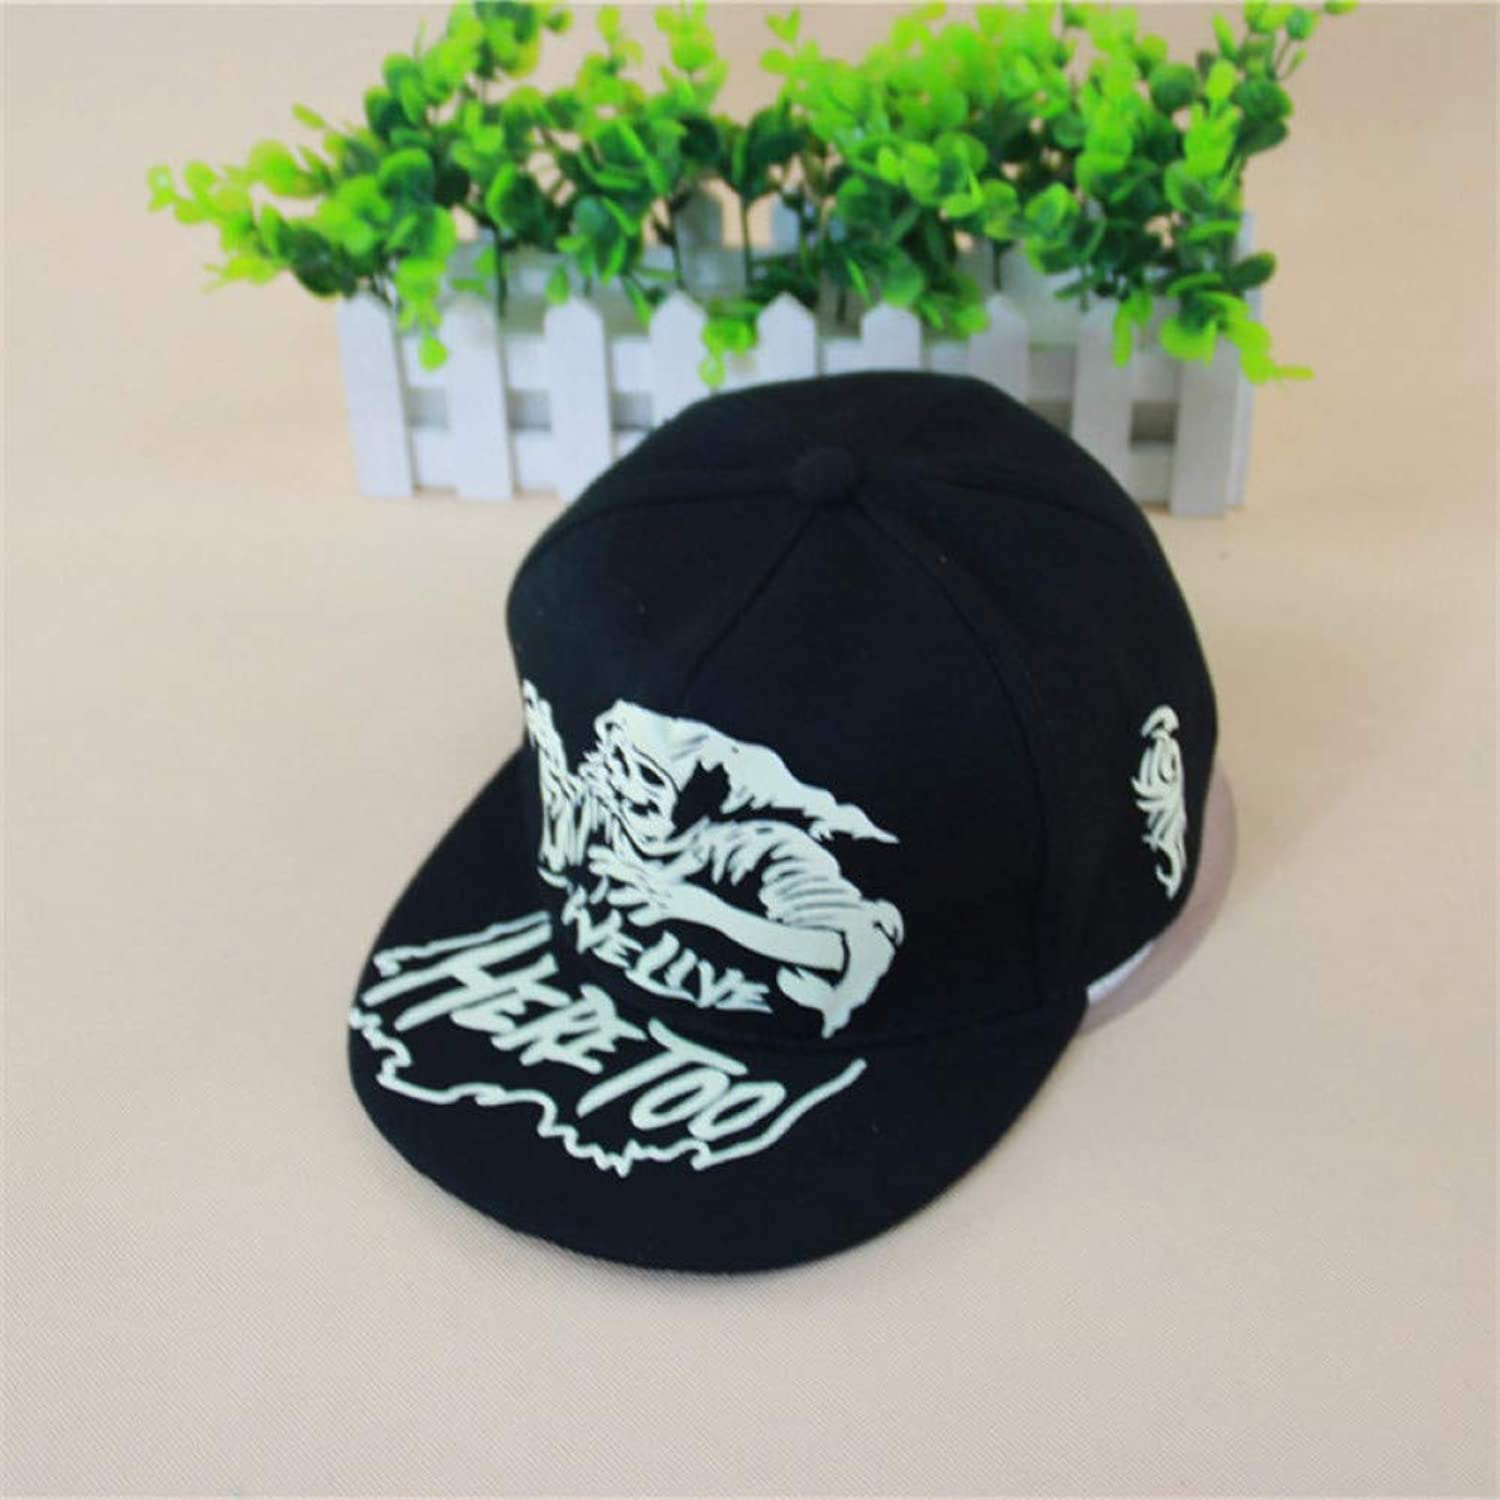 WYKDA Cotton Black Wolf Hat Hip Hop Fluorescence Wolf Head Baseball Cap for Men Women Raiders Snapback Gorras Sun Hat Bones